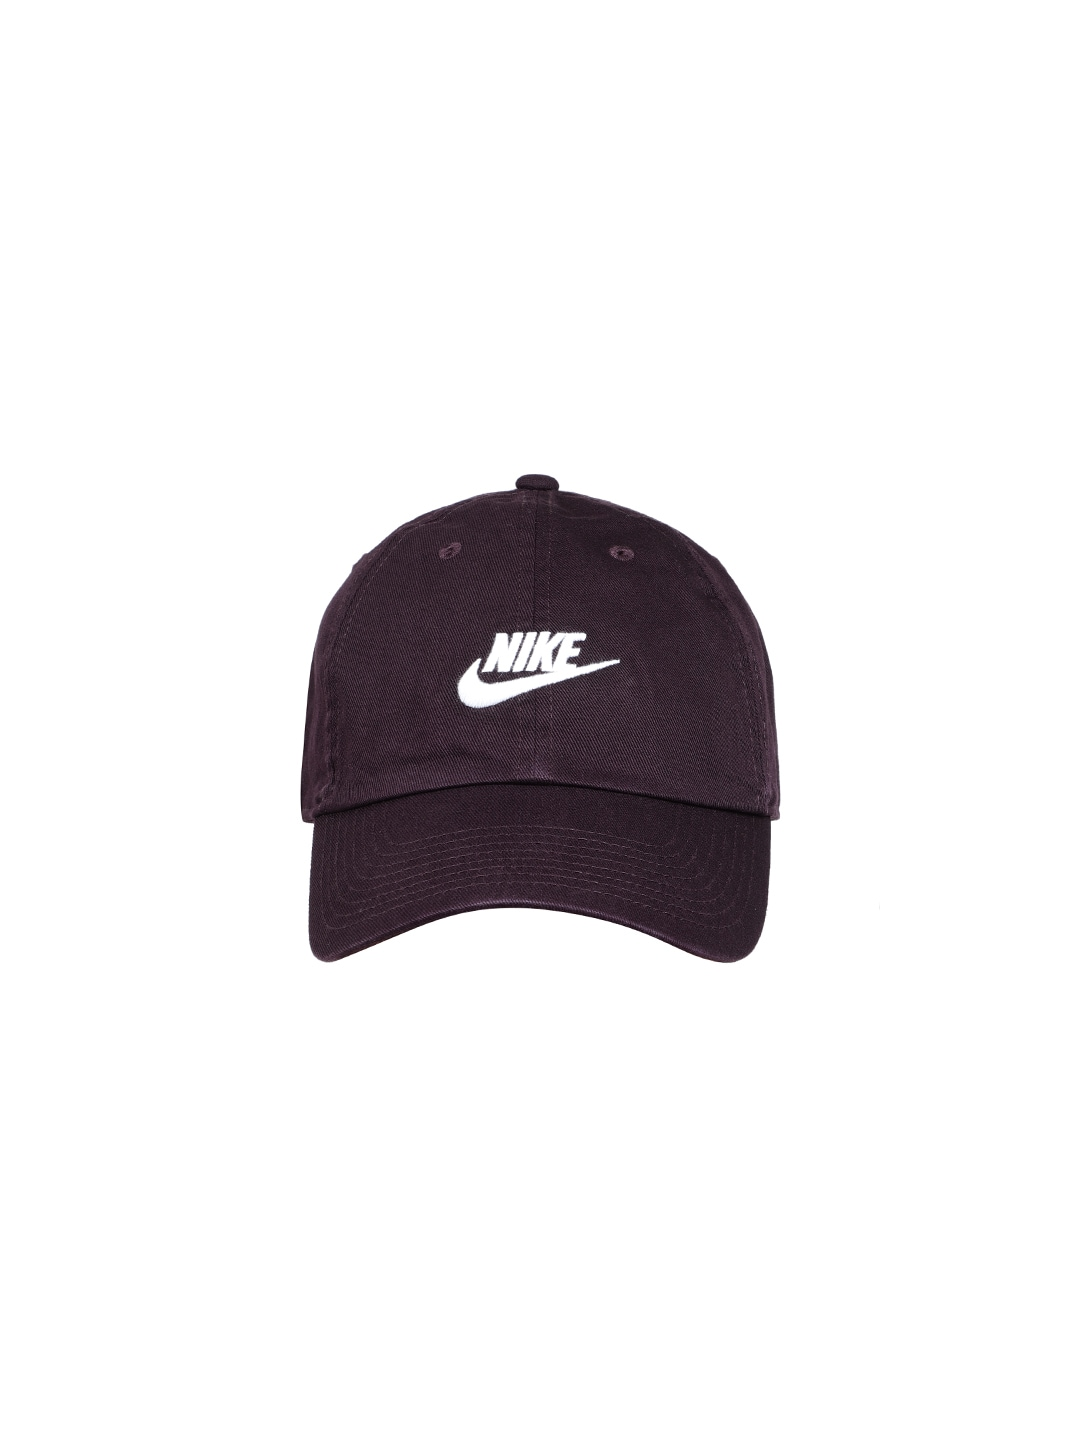 new arrivals 9caf5 c6457 Hats   Caps For Men - Shop Mens Caps   Hats Online at best price   Myntra